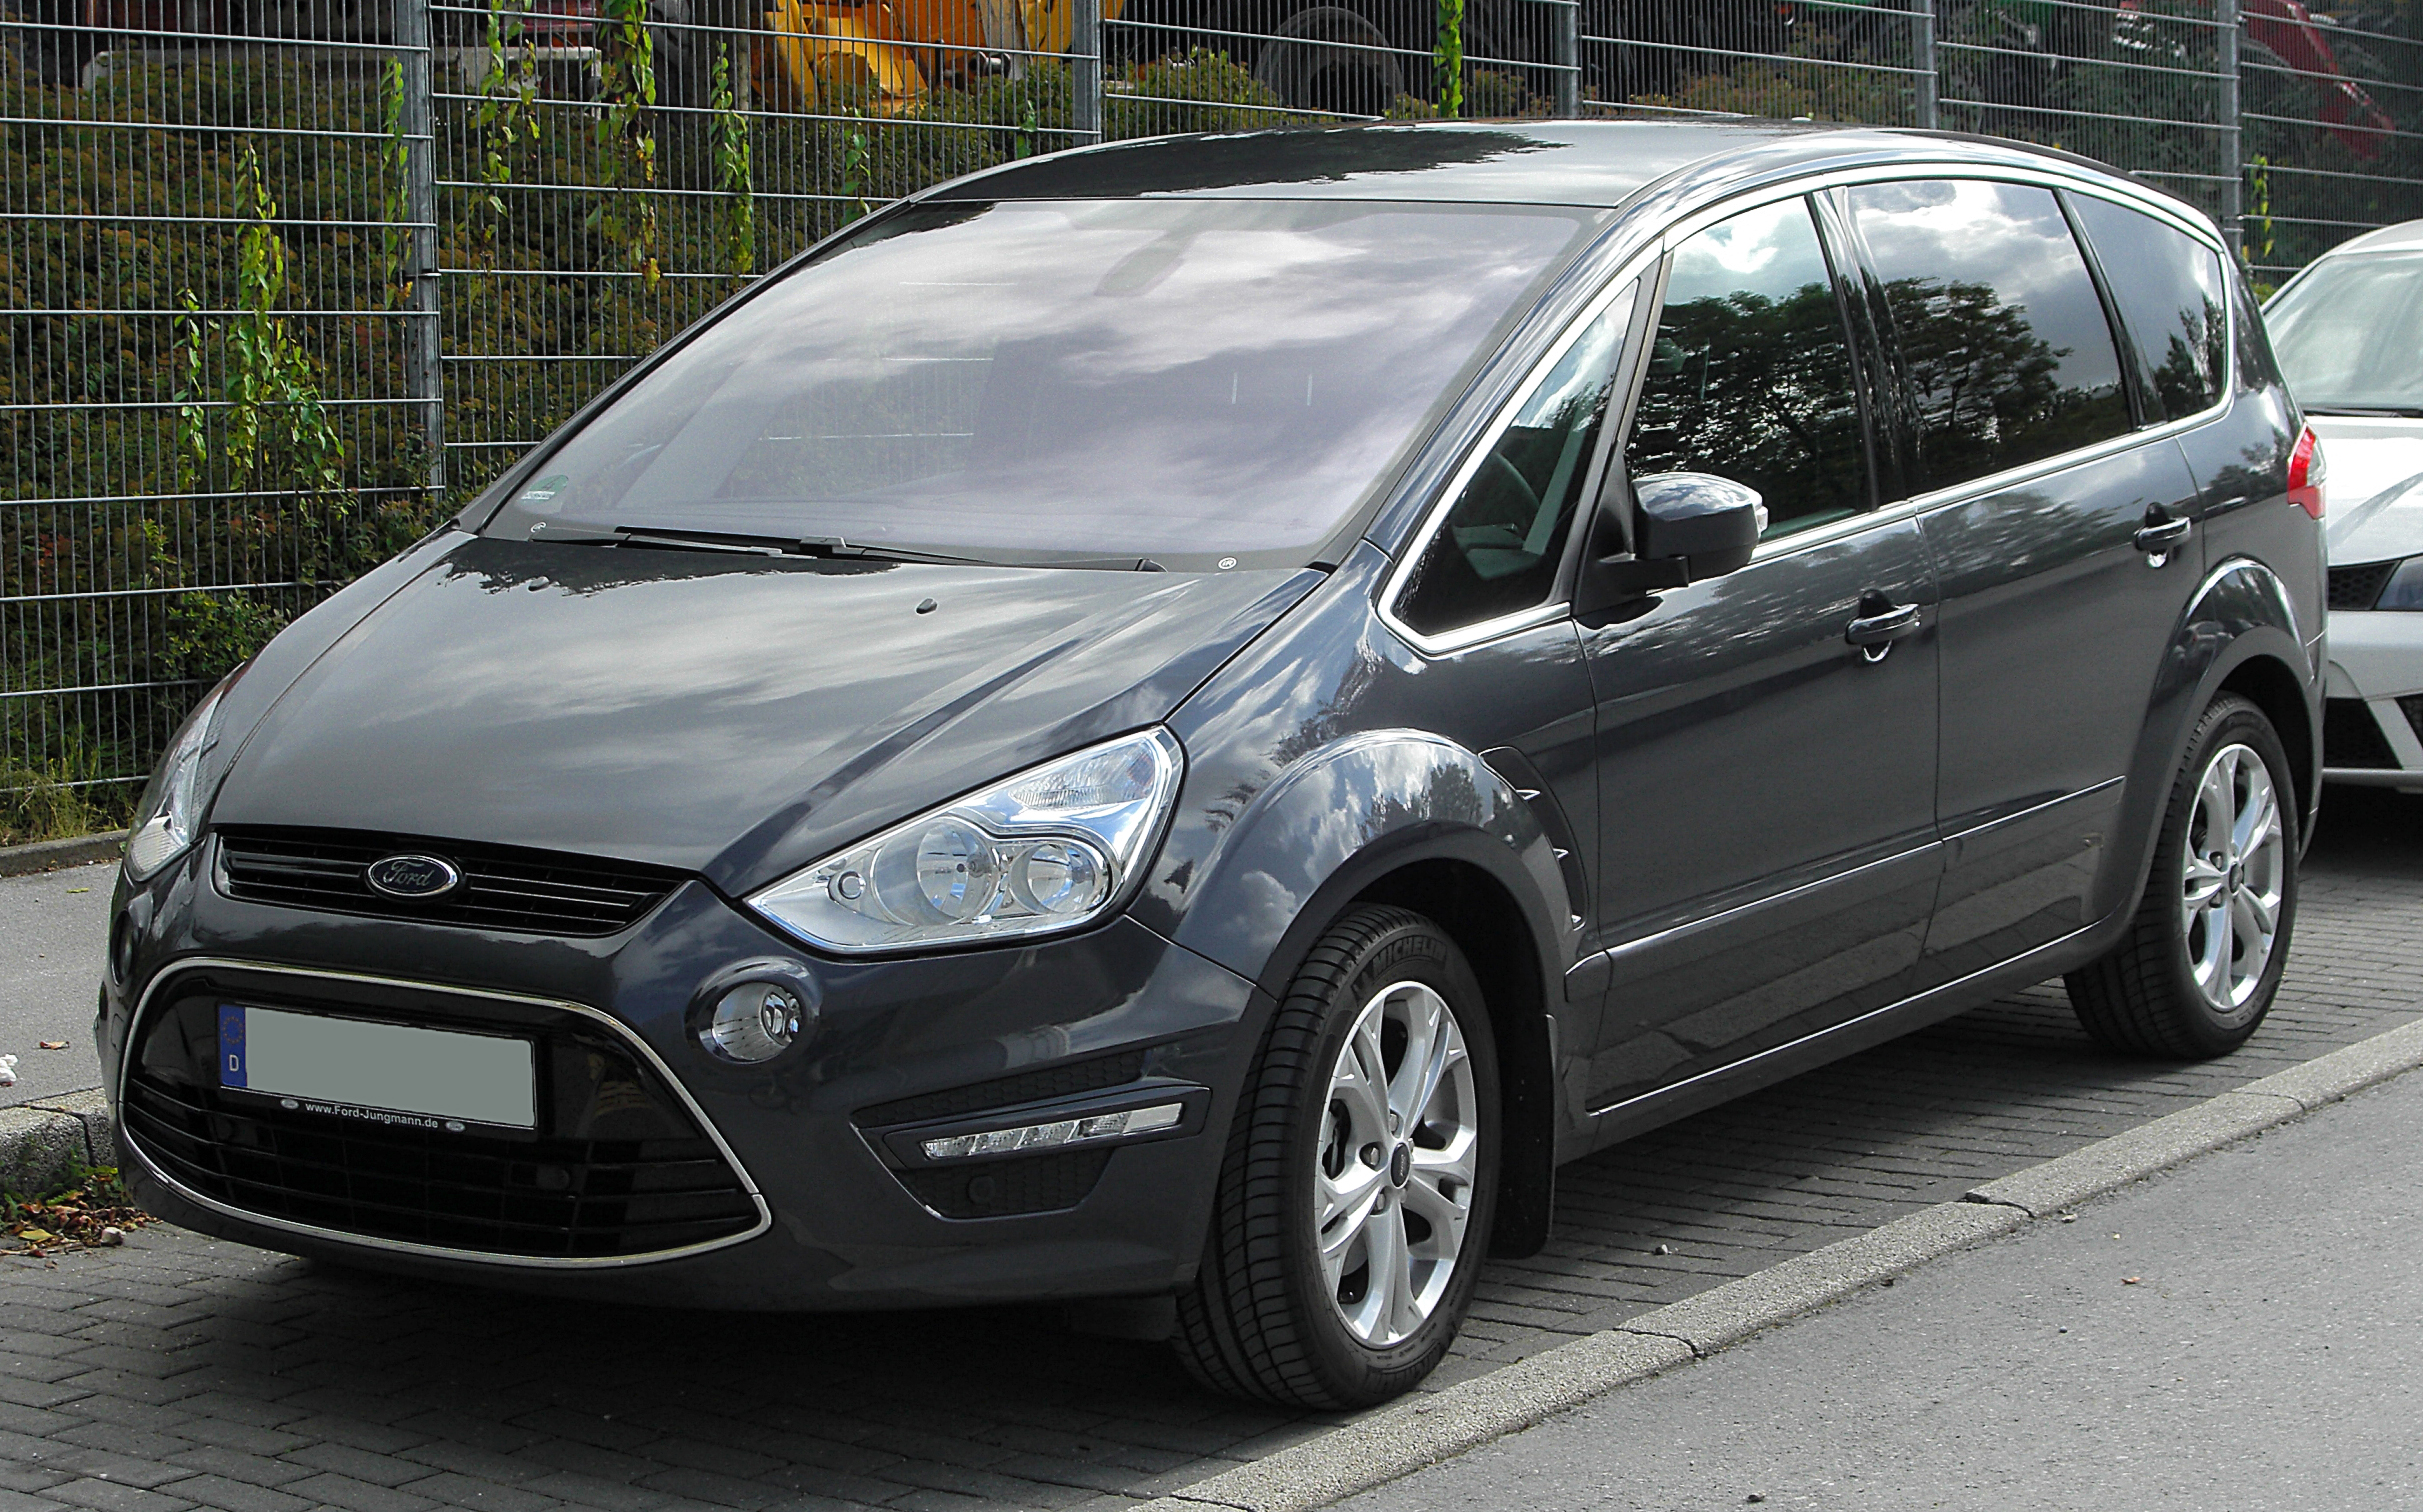 file ford s max facelift front wikimedia. Black Bedroom Furniture Sets. Home Design Ideas